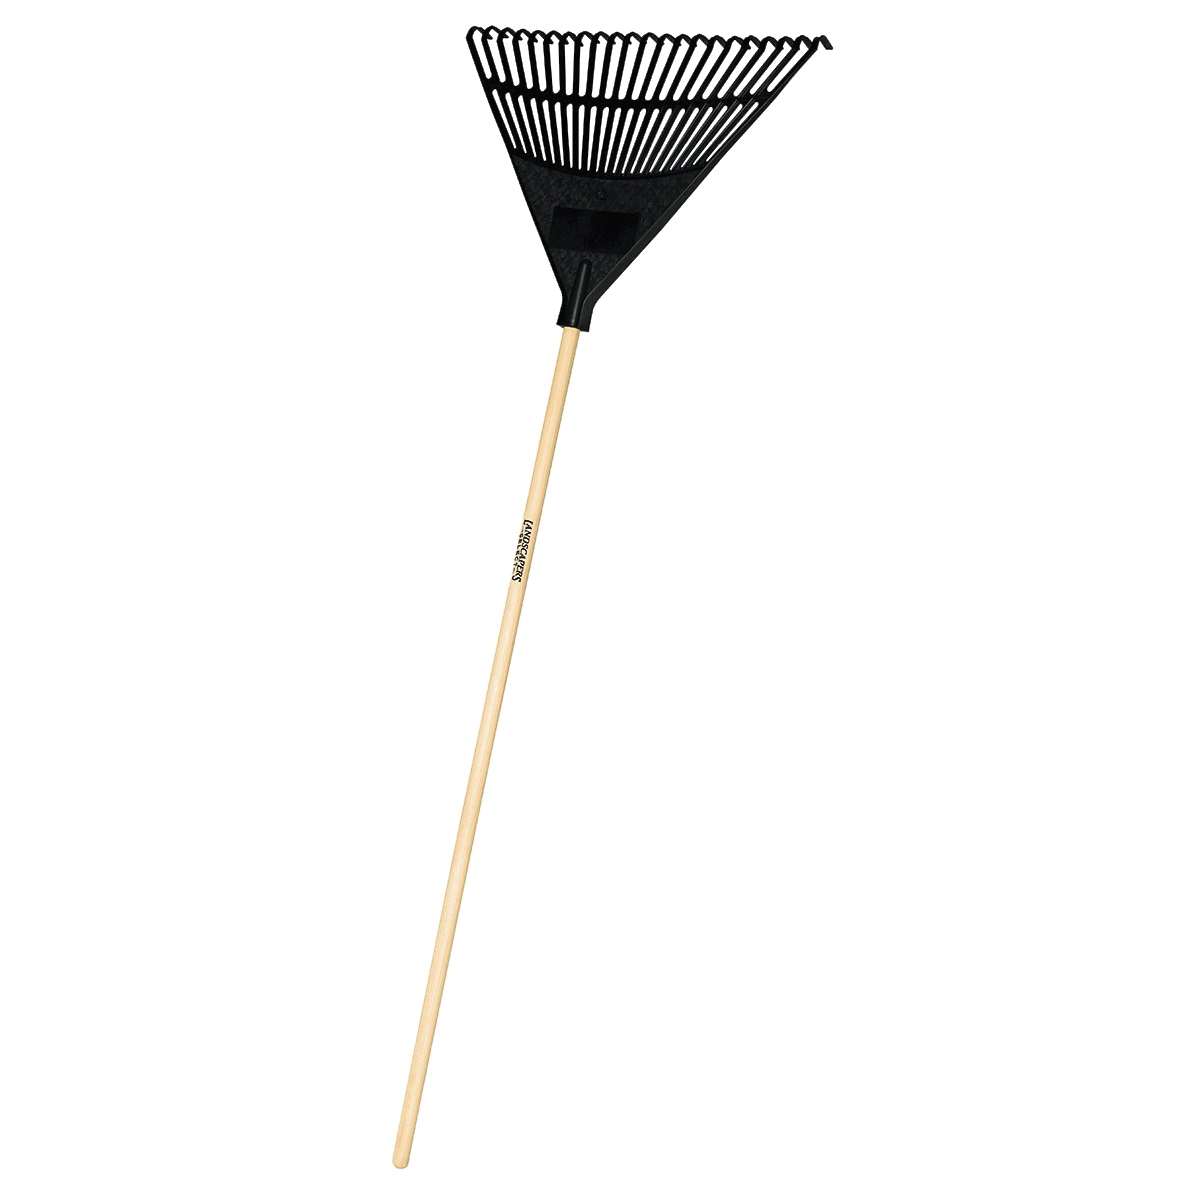 Picture of Landscapers Select 34591 EP22OR Lawn/Leaf Rake, Poly Tine, 22 -Tine, Hardwood Handle, 48 in L Handle